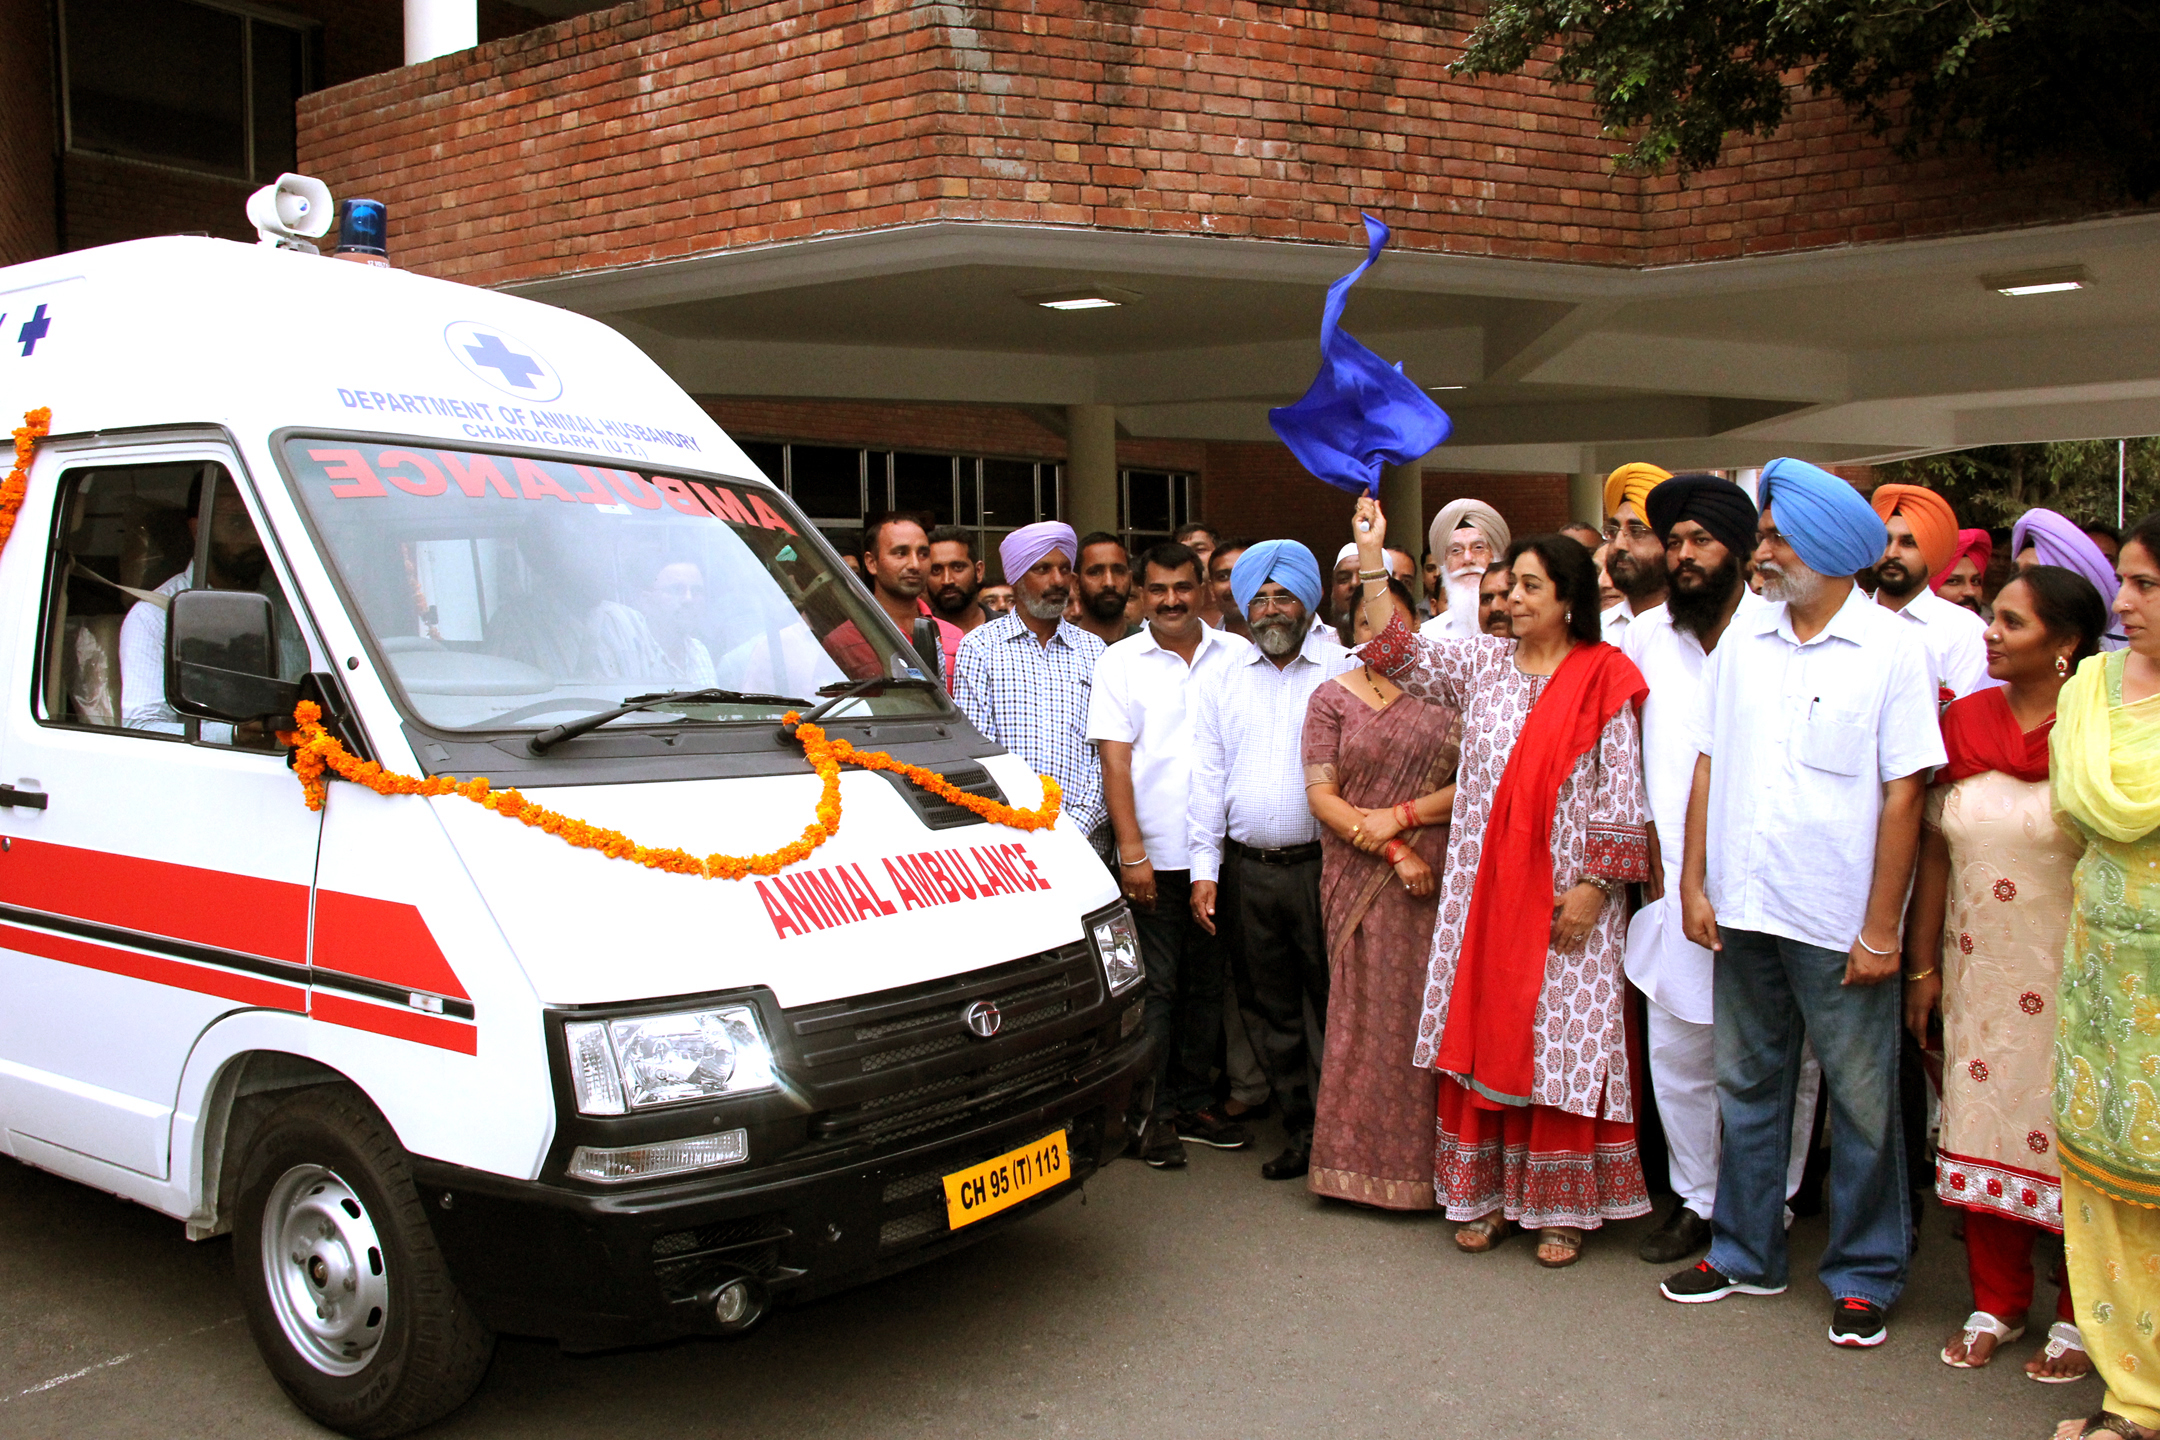 Smt. Kirron Kher, Member of Parliament, Chandigarh Flag off Animal Ambulance alongwith senior officers Chandigarh Administration  at U.T. Guest House,Sector 6, Chandigarh on Saturday, August 27, 2016.